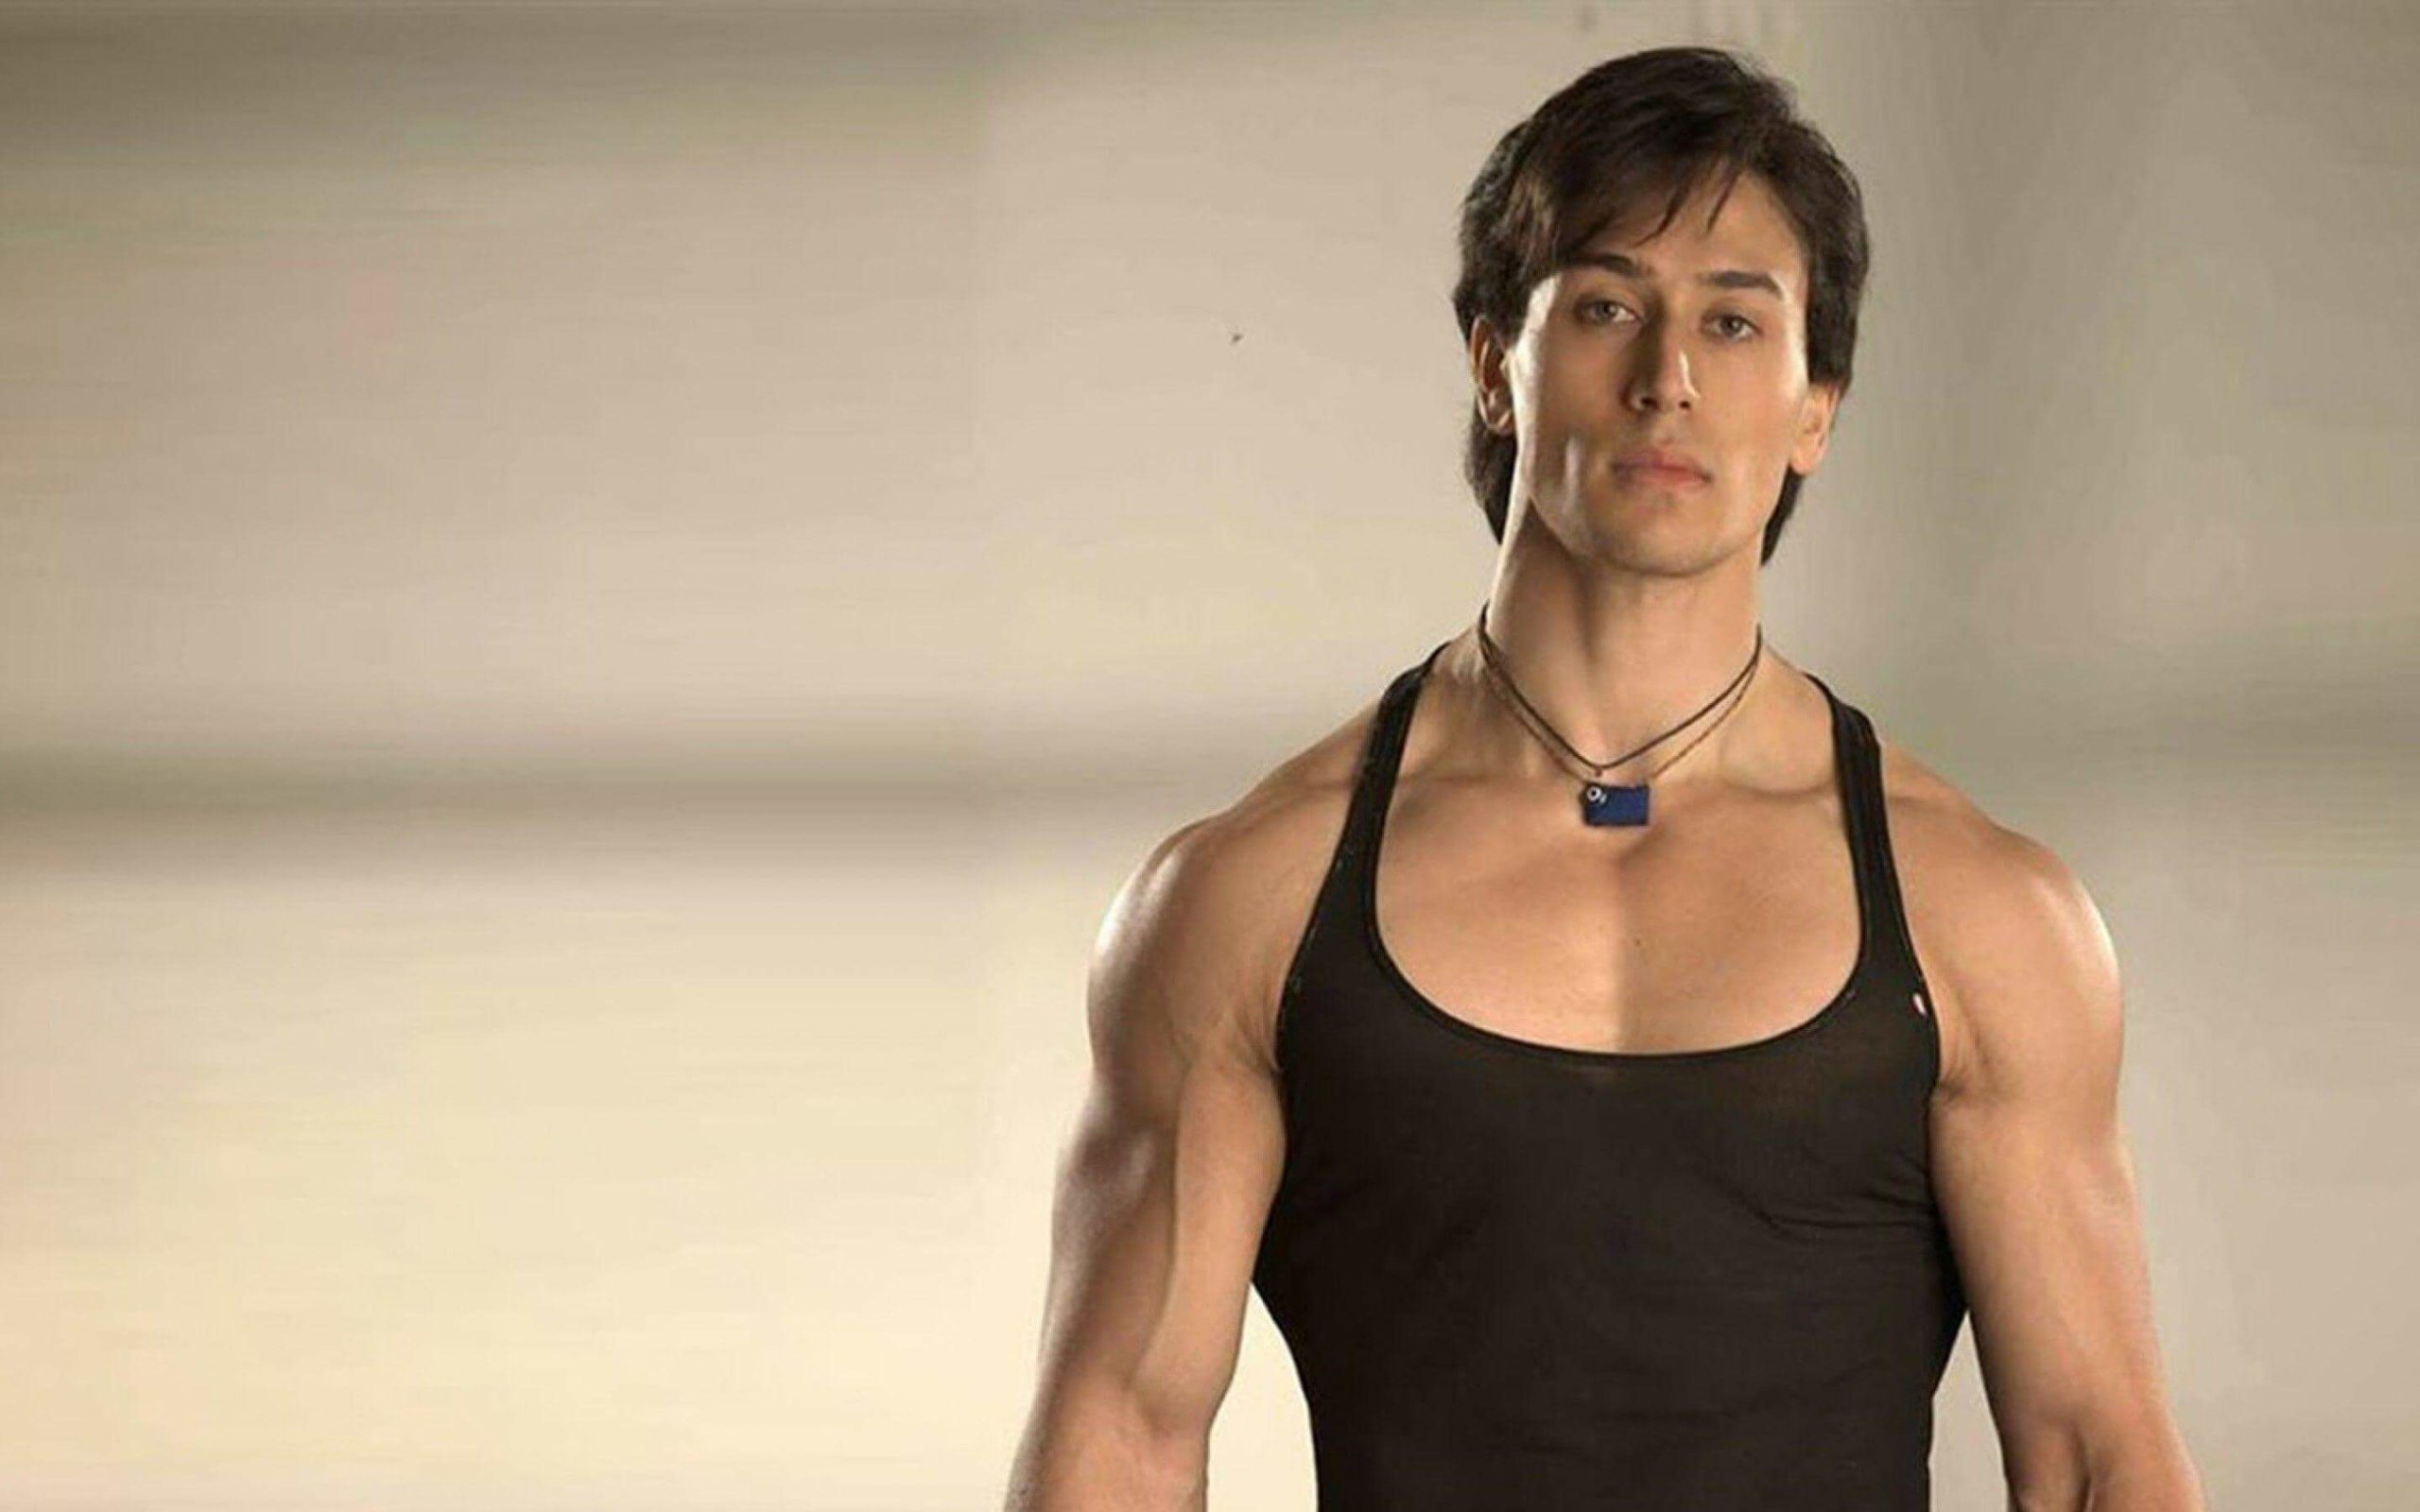 Tiger Shroff Age, Photos(image), Song, Movie, Height, Girlfriend, Sister, Date Of Birth, Net Worth, Biography, Education, Awards, Instagram, Twitter, Facebook, Wiki, Imdb, Youtube (9)